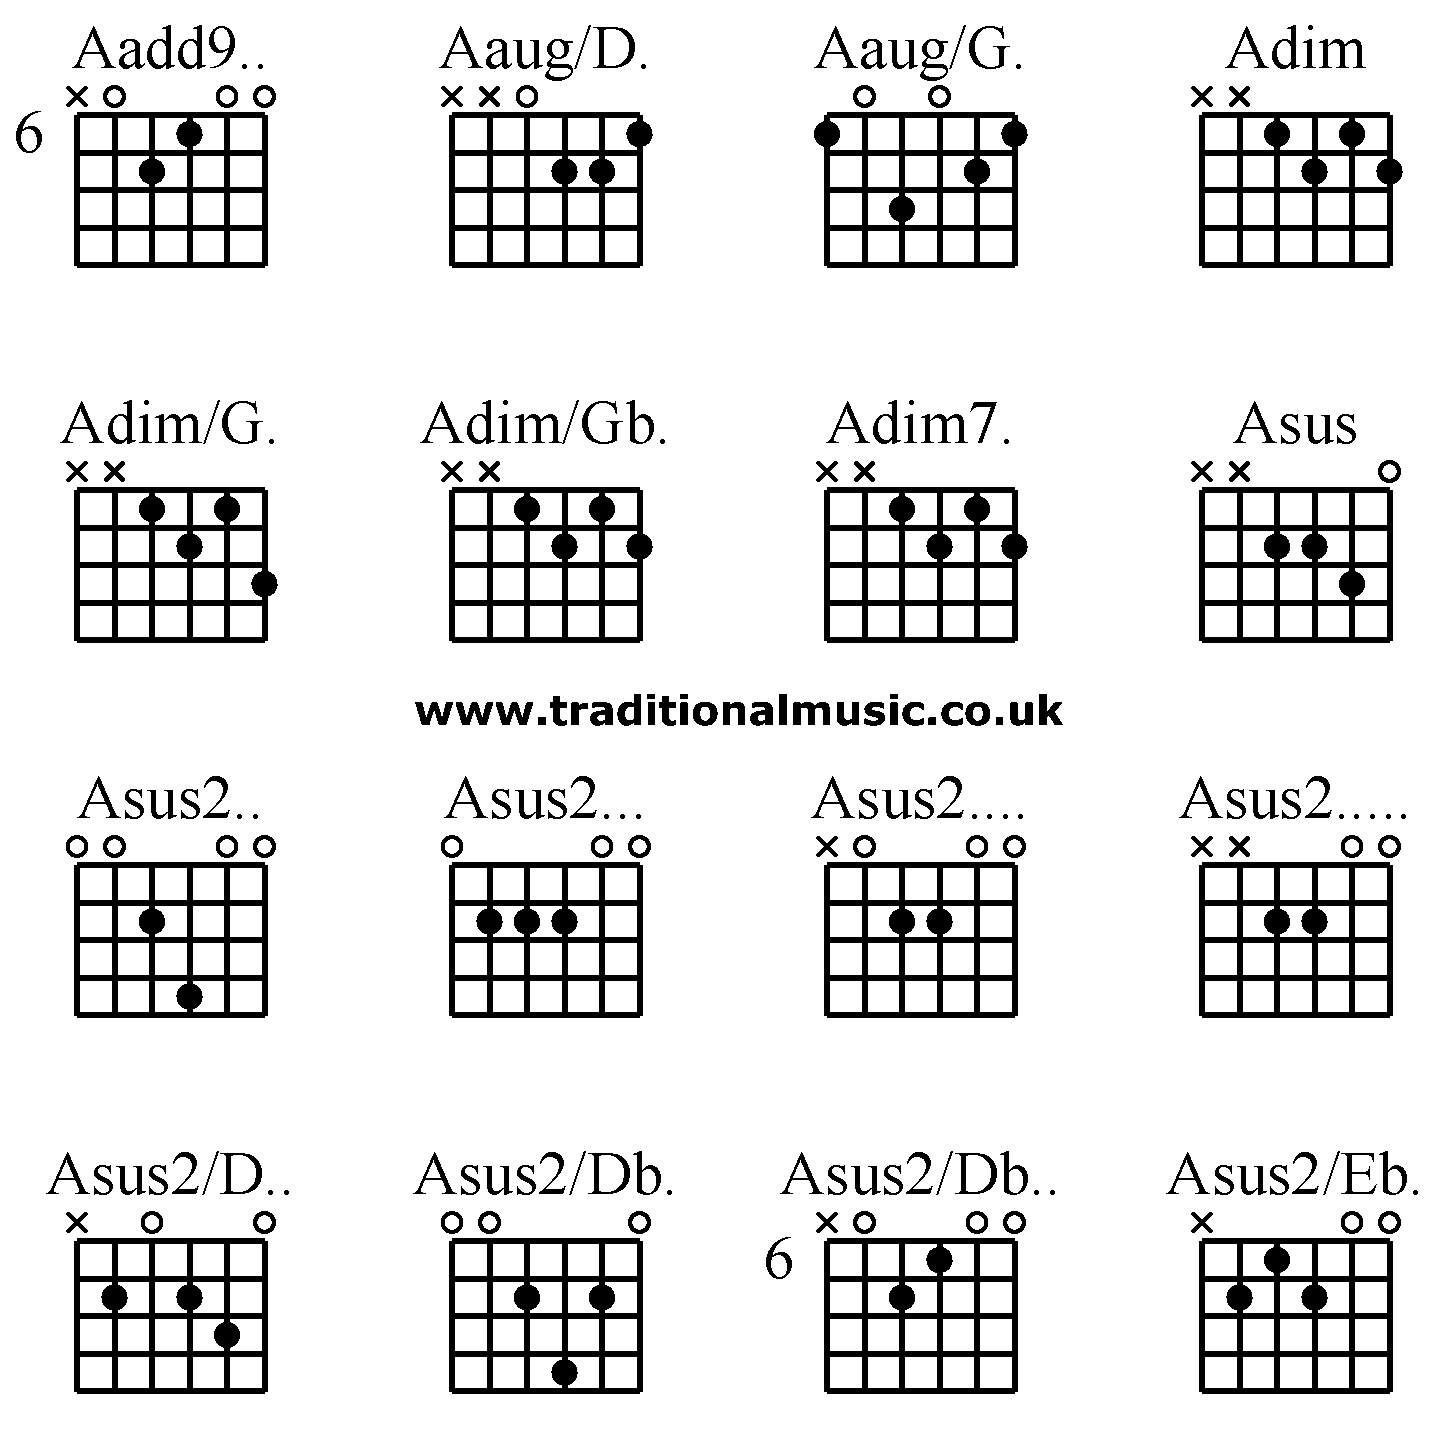 Advanced guitar chords: Aadd9.. Aaug/D. Aaug/G. Adim, Adim ...